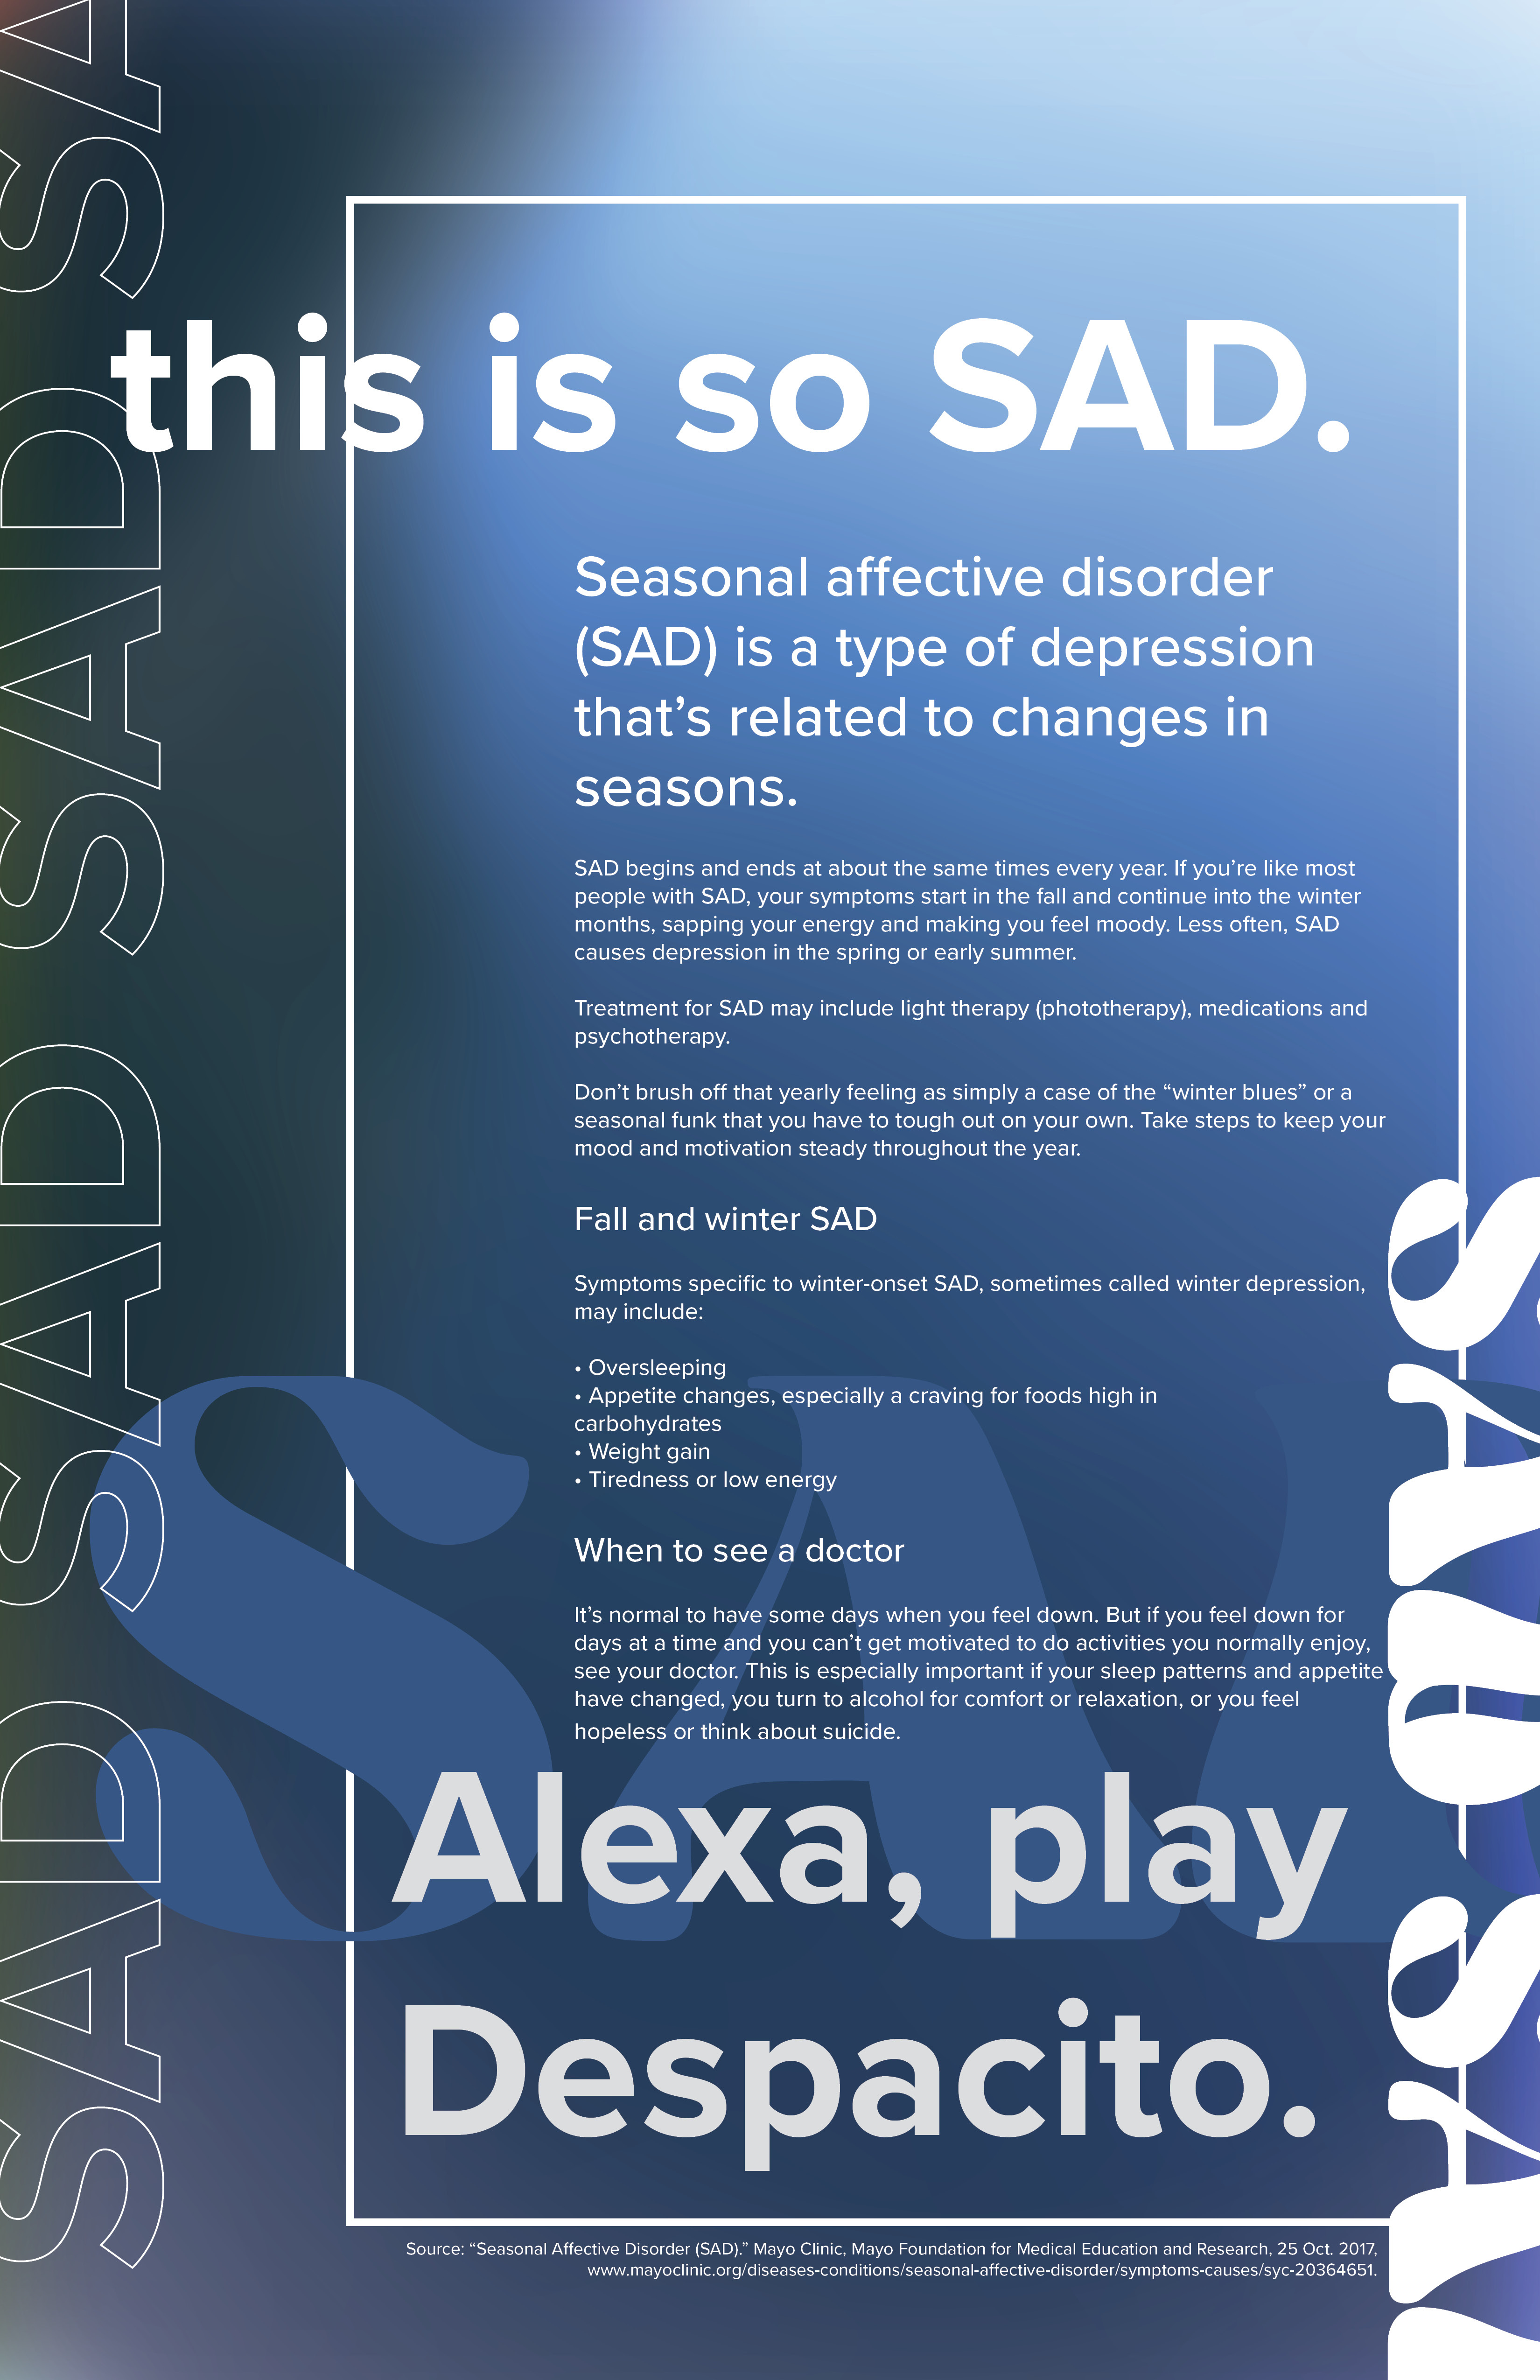 poster with abstract blue background that says 'This is SAD, Alexa, play despacito' and includes information about seasonal affective disorder, or SAD